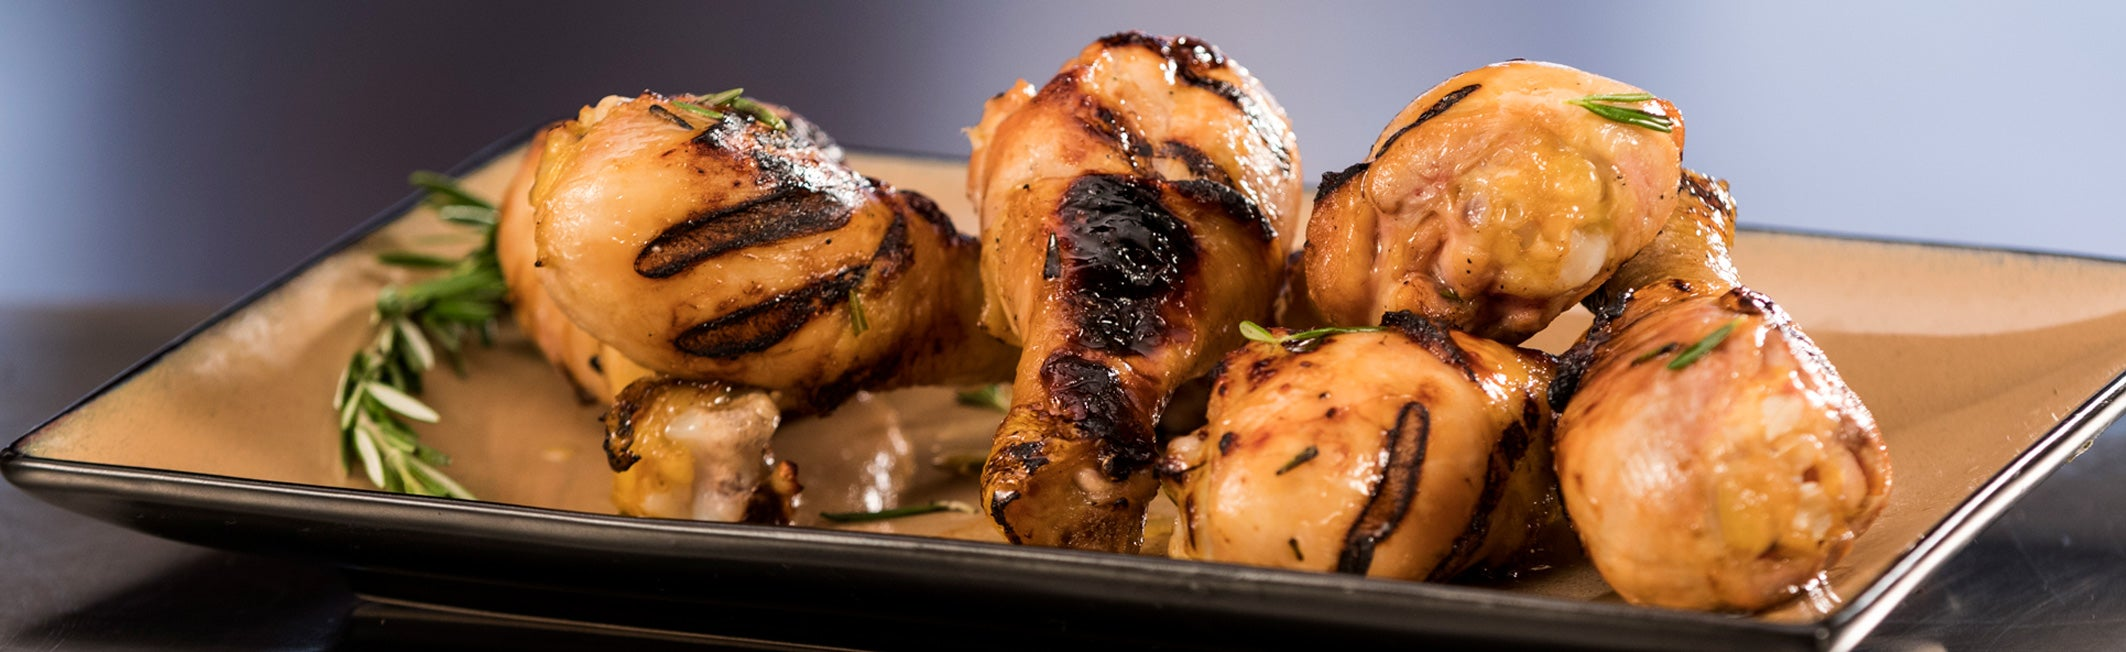 Go Food! Rosemary Grilled Chicken Drumsticks